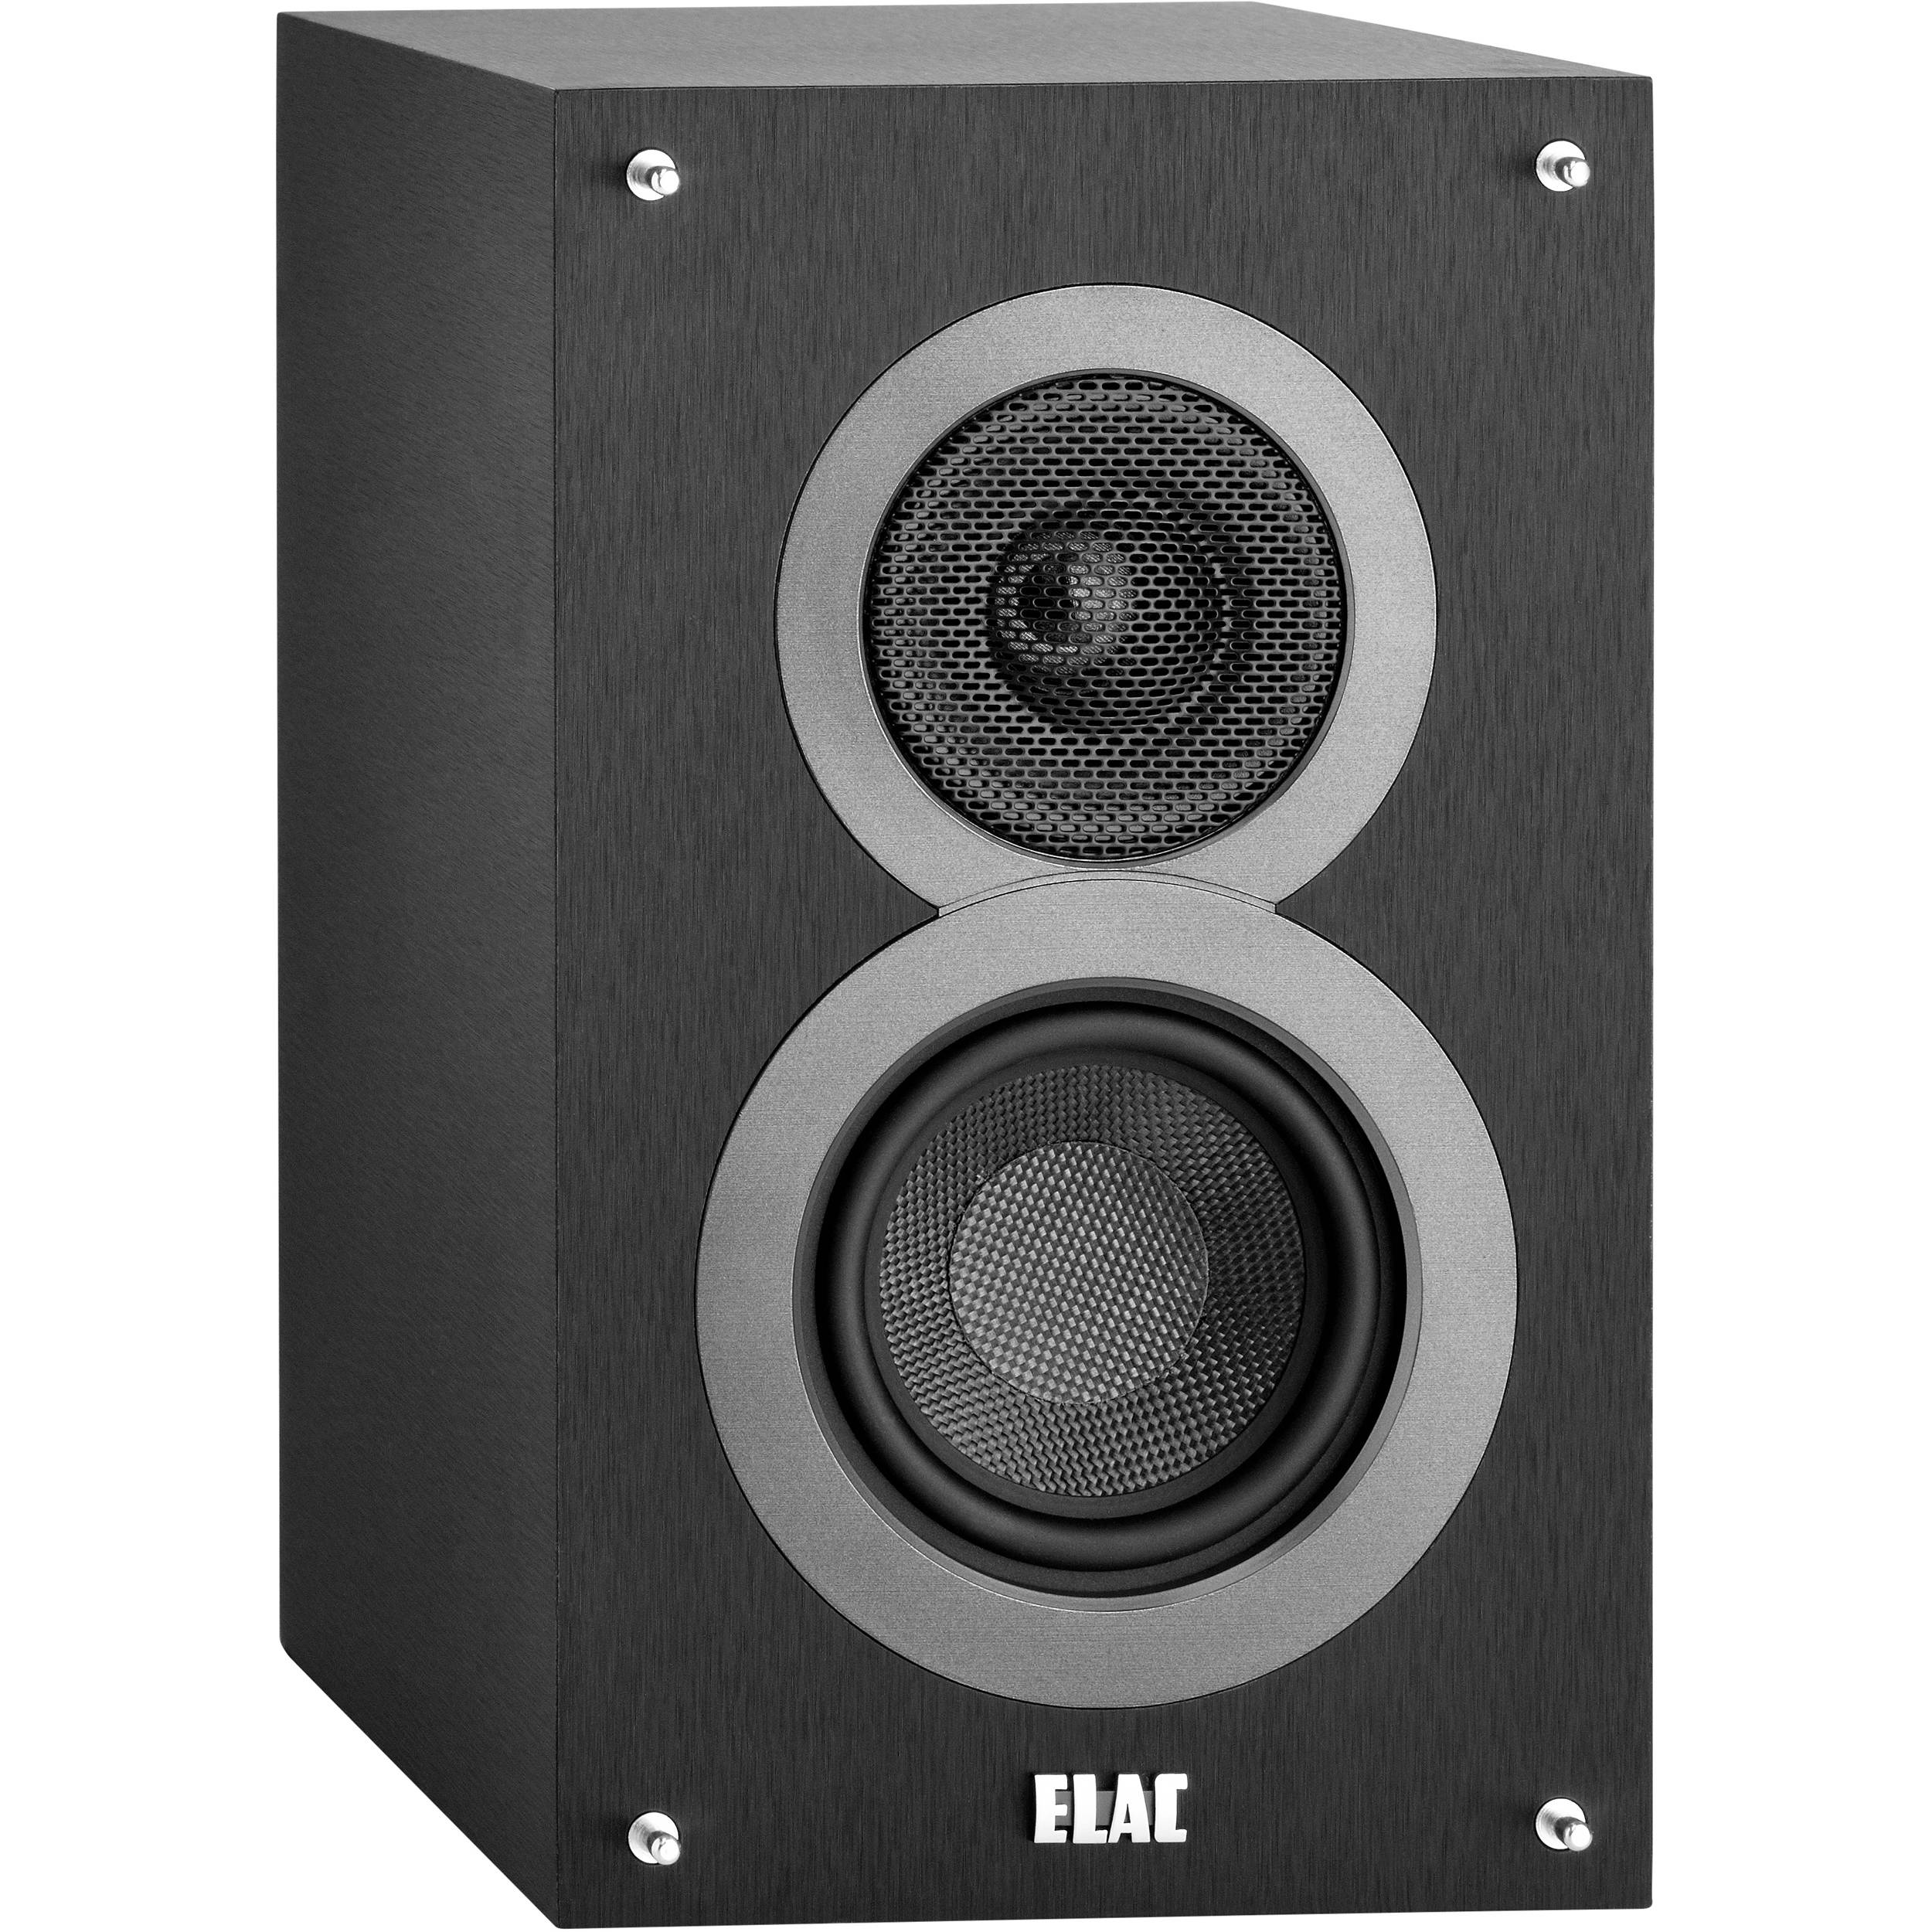 dali reference speaker theater elac review and bookshelf speakers pioneer reviews home